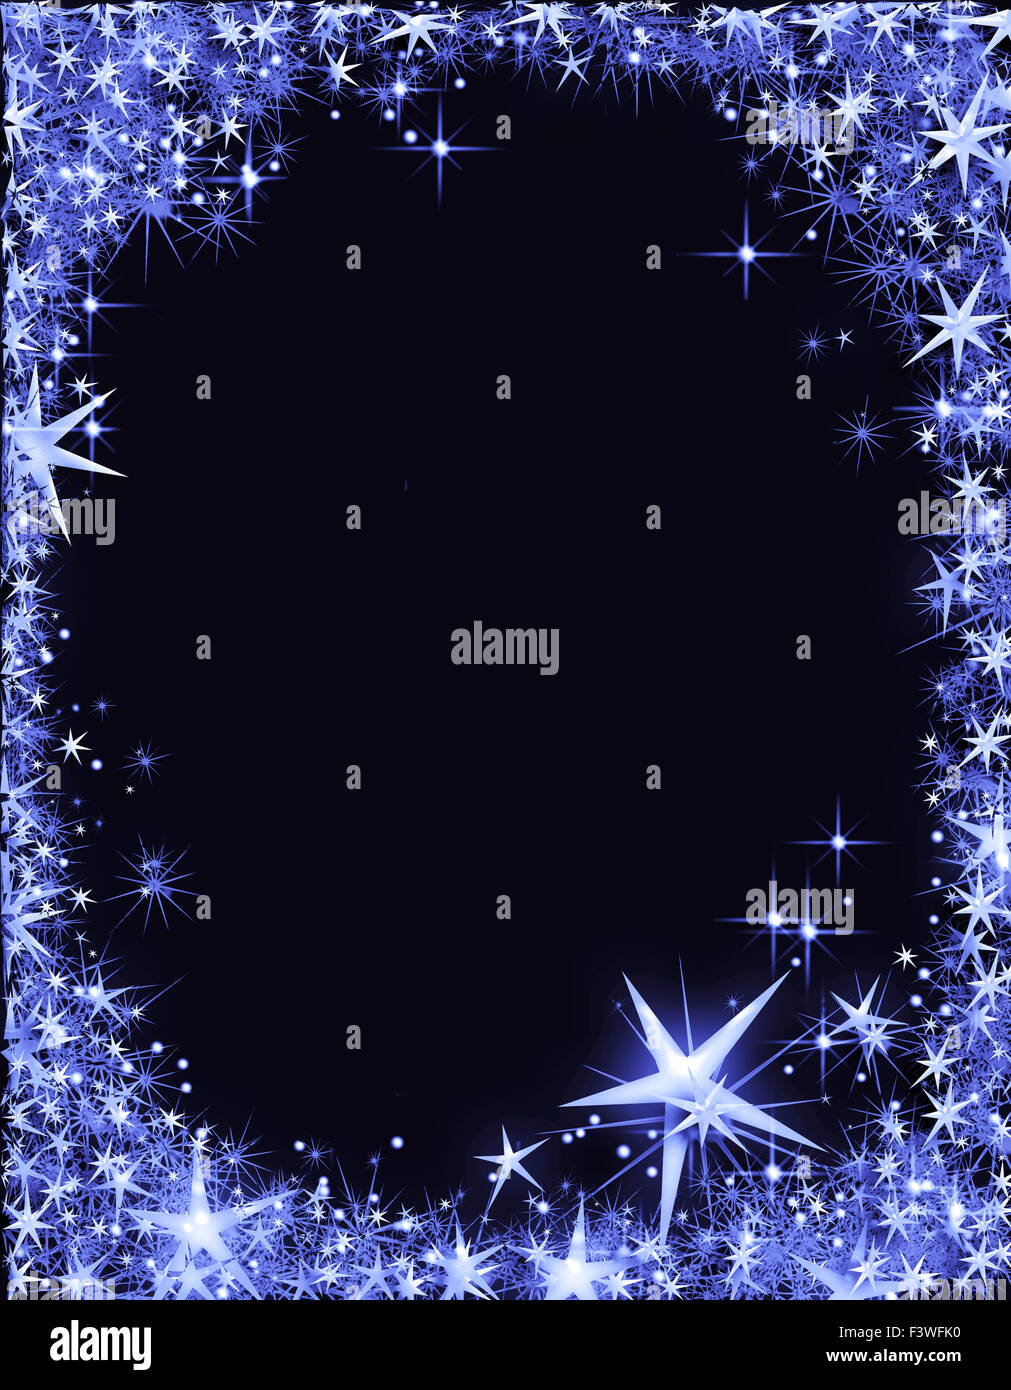 New Years Eve Frame With Stars Stock Photo 88456900 Alamy